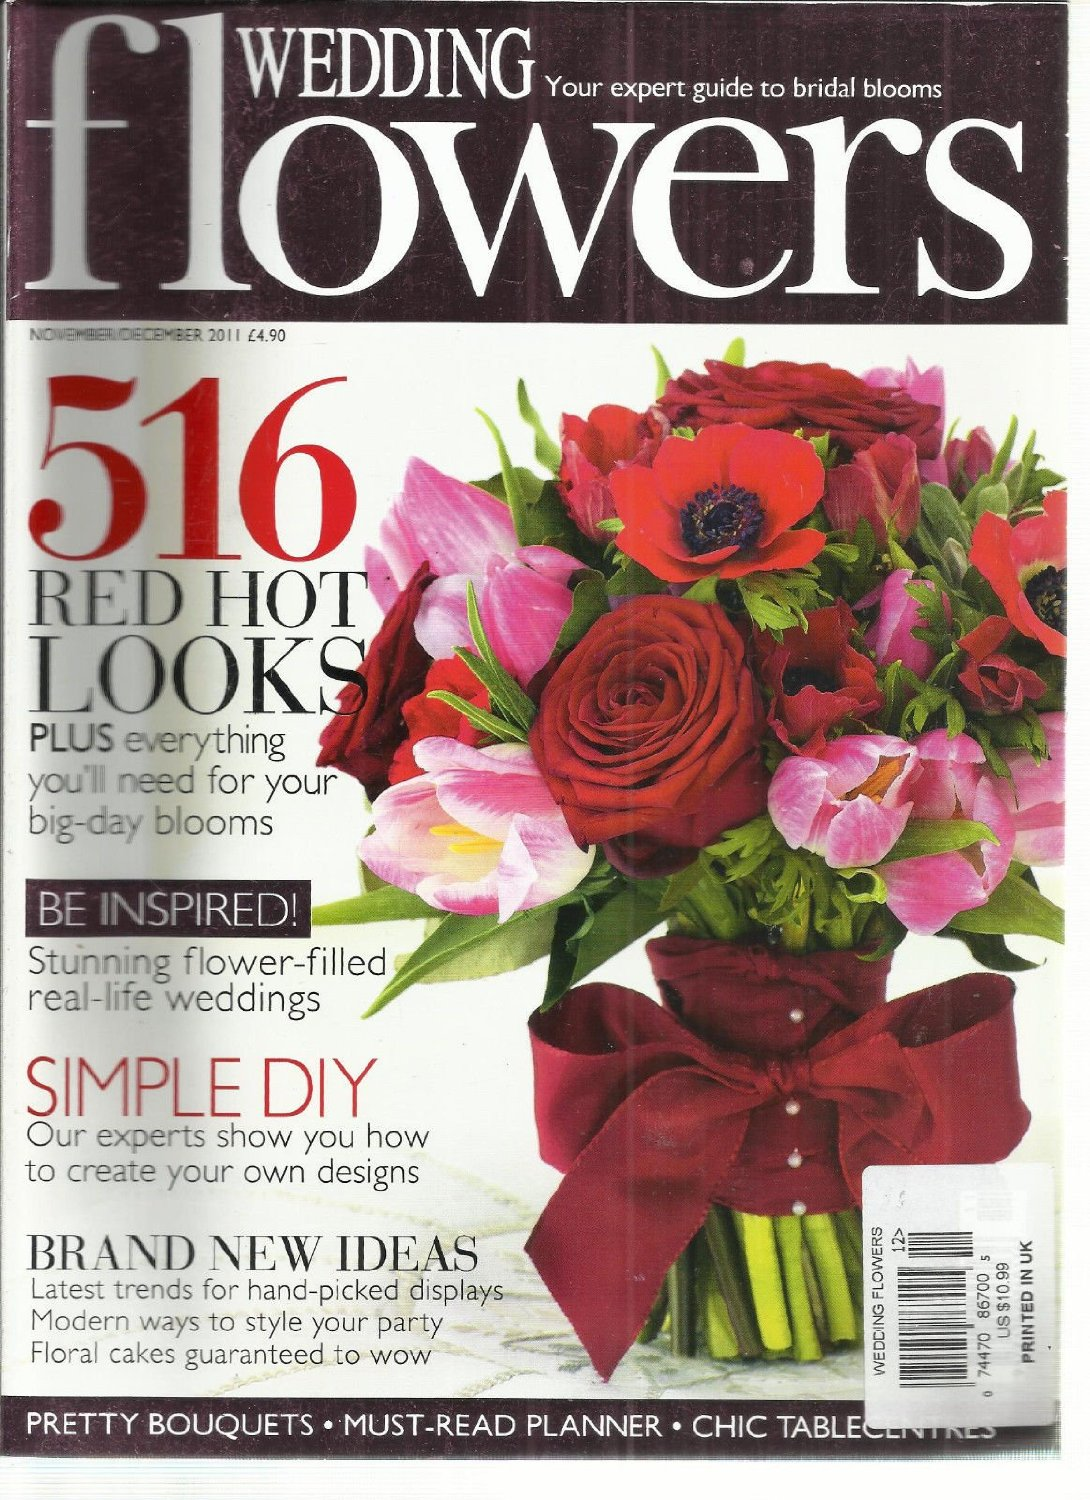 WEDDING FLOWERS, NOVEMBER / DECEMBER, 2011 ( YOUR EXPERT GUIDE TO BRIDAL BLOOMS